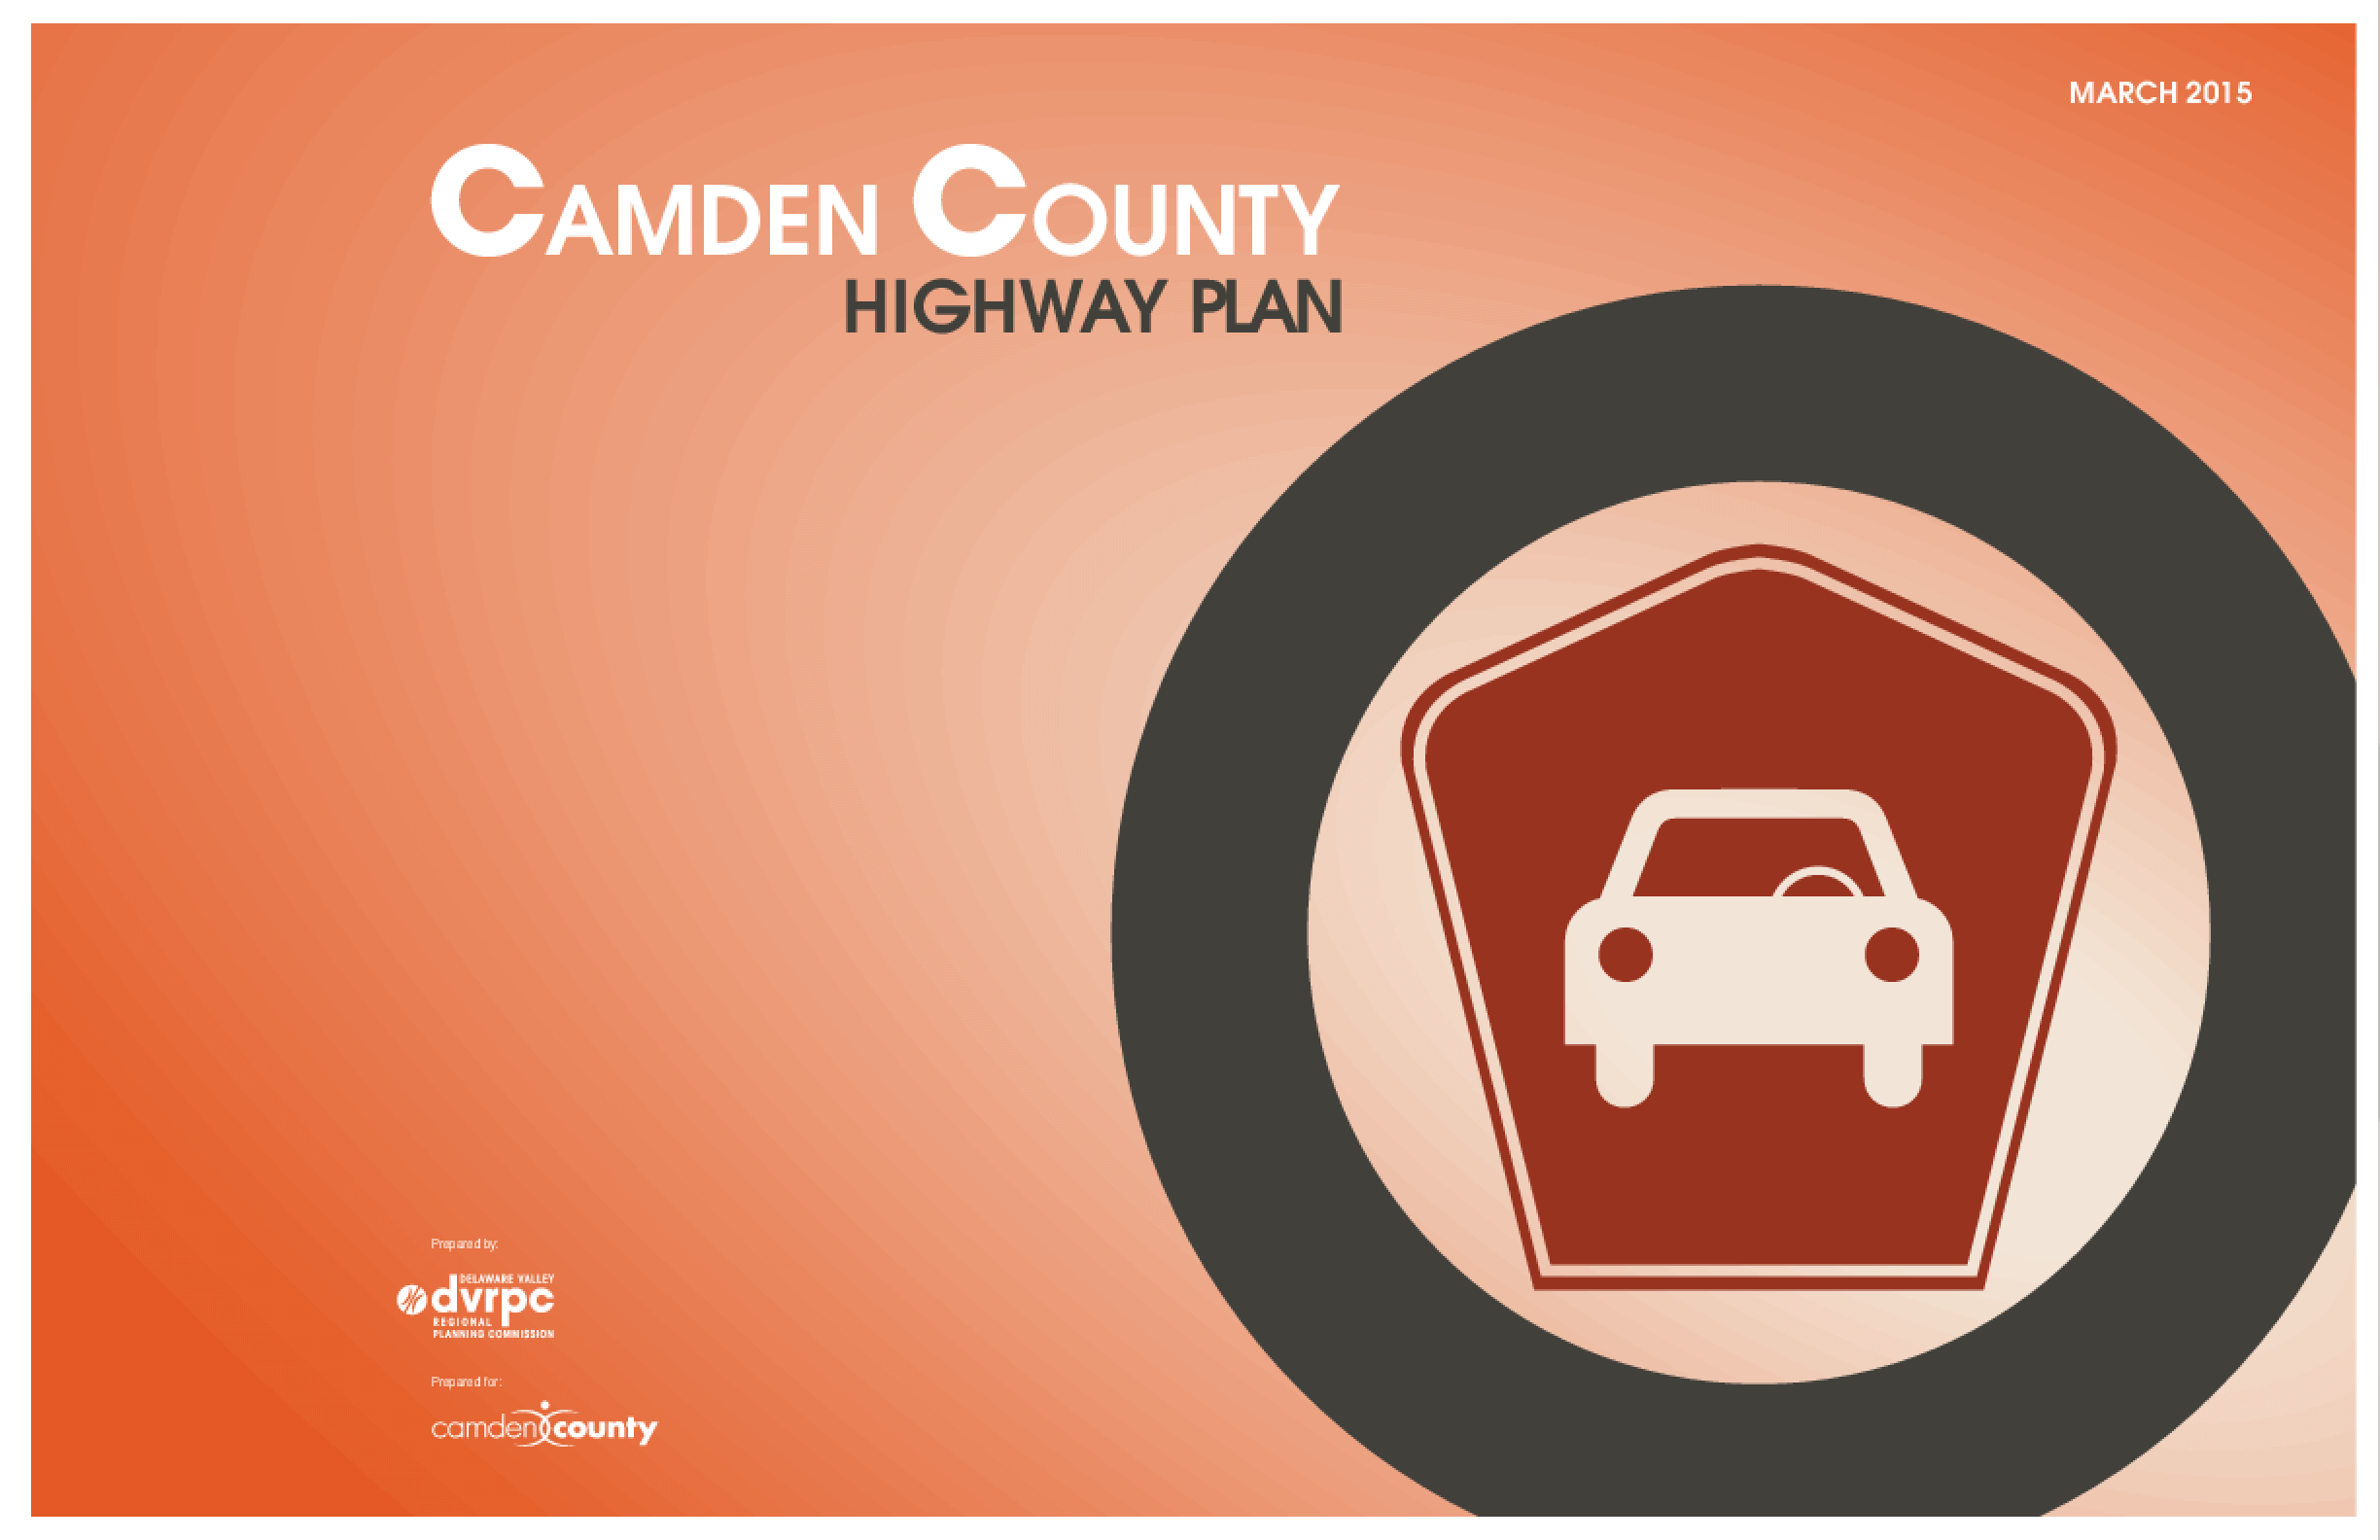 Camden County Highway Plan